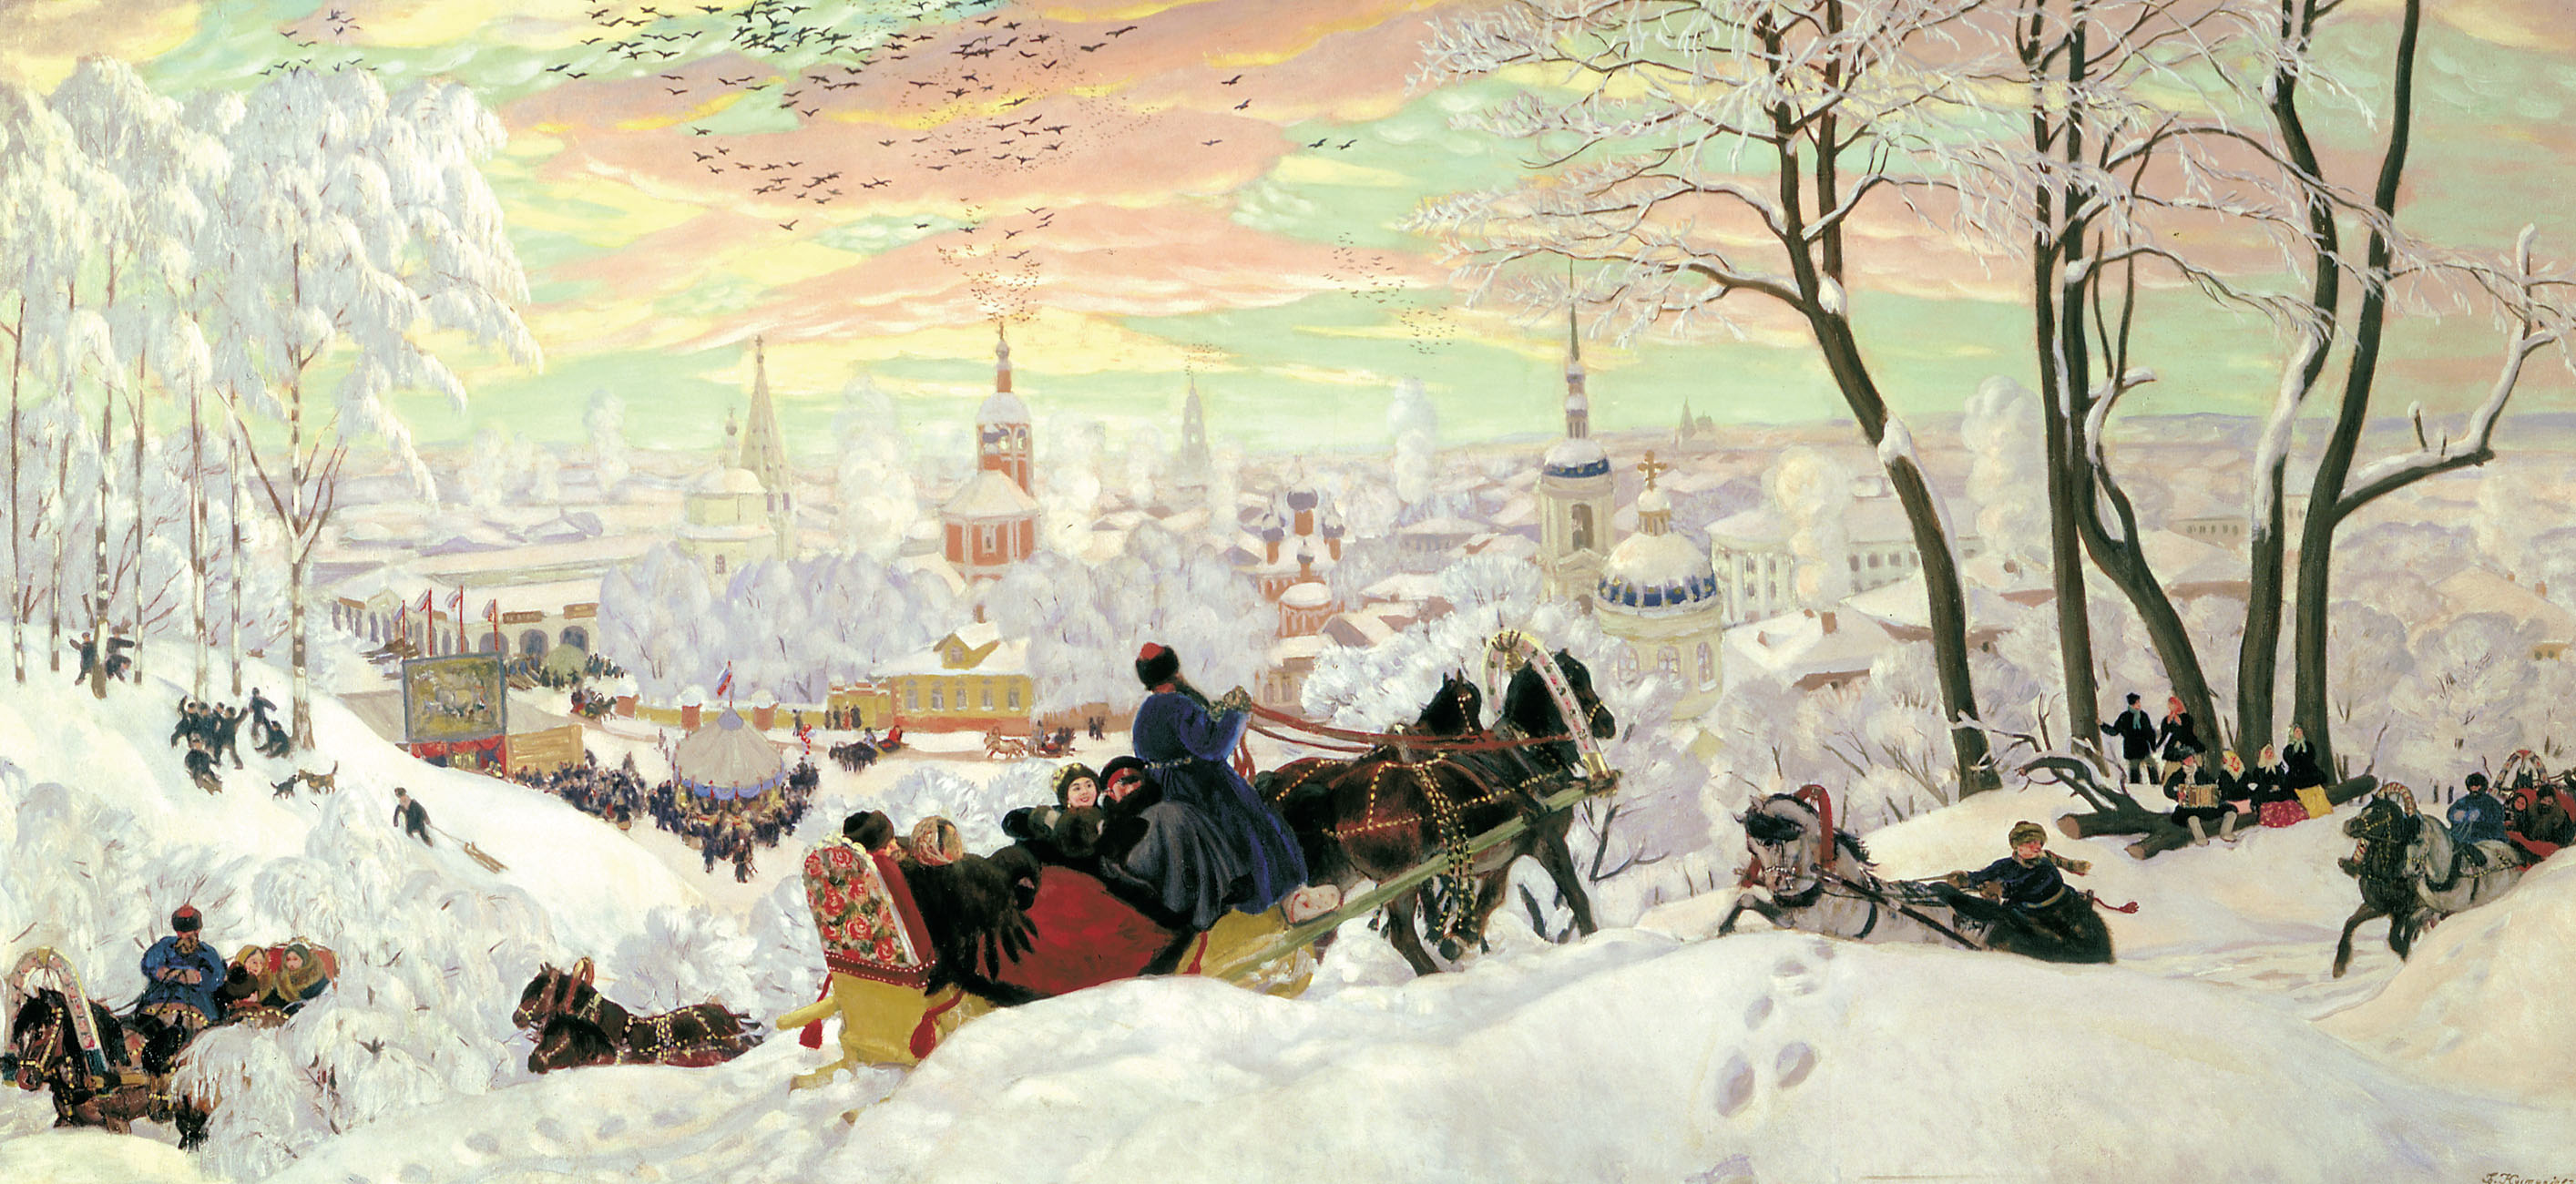 https://i2.wp.com/upload.wikimedia.org/wikipedia/commons/f/f4/Kustodiyev_maslenitsa.JPG